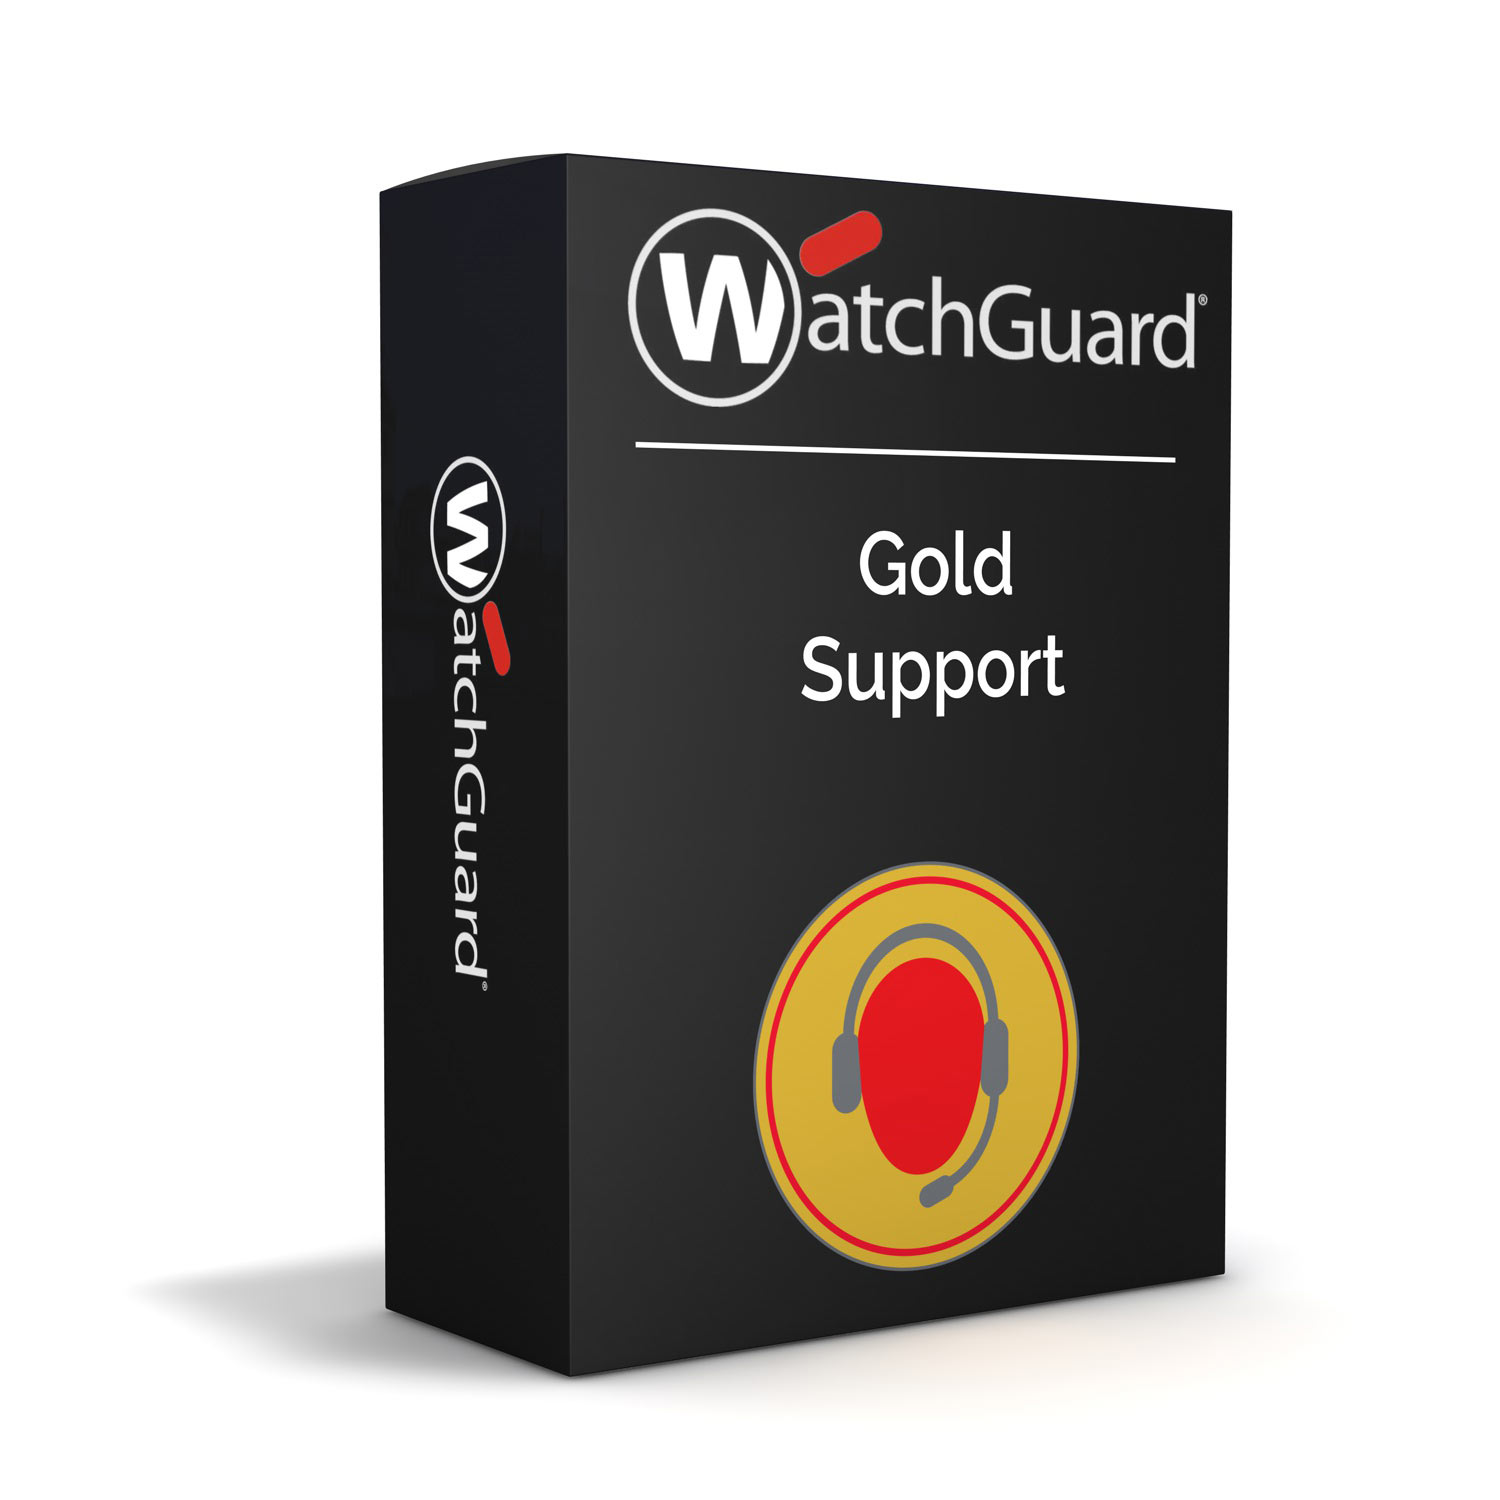 WatchGuard Gold Support Renewal/Upgrade 1-yr for Firebox T55